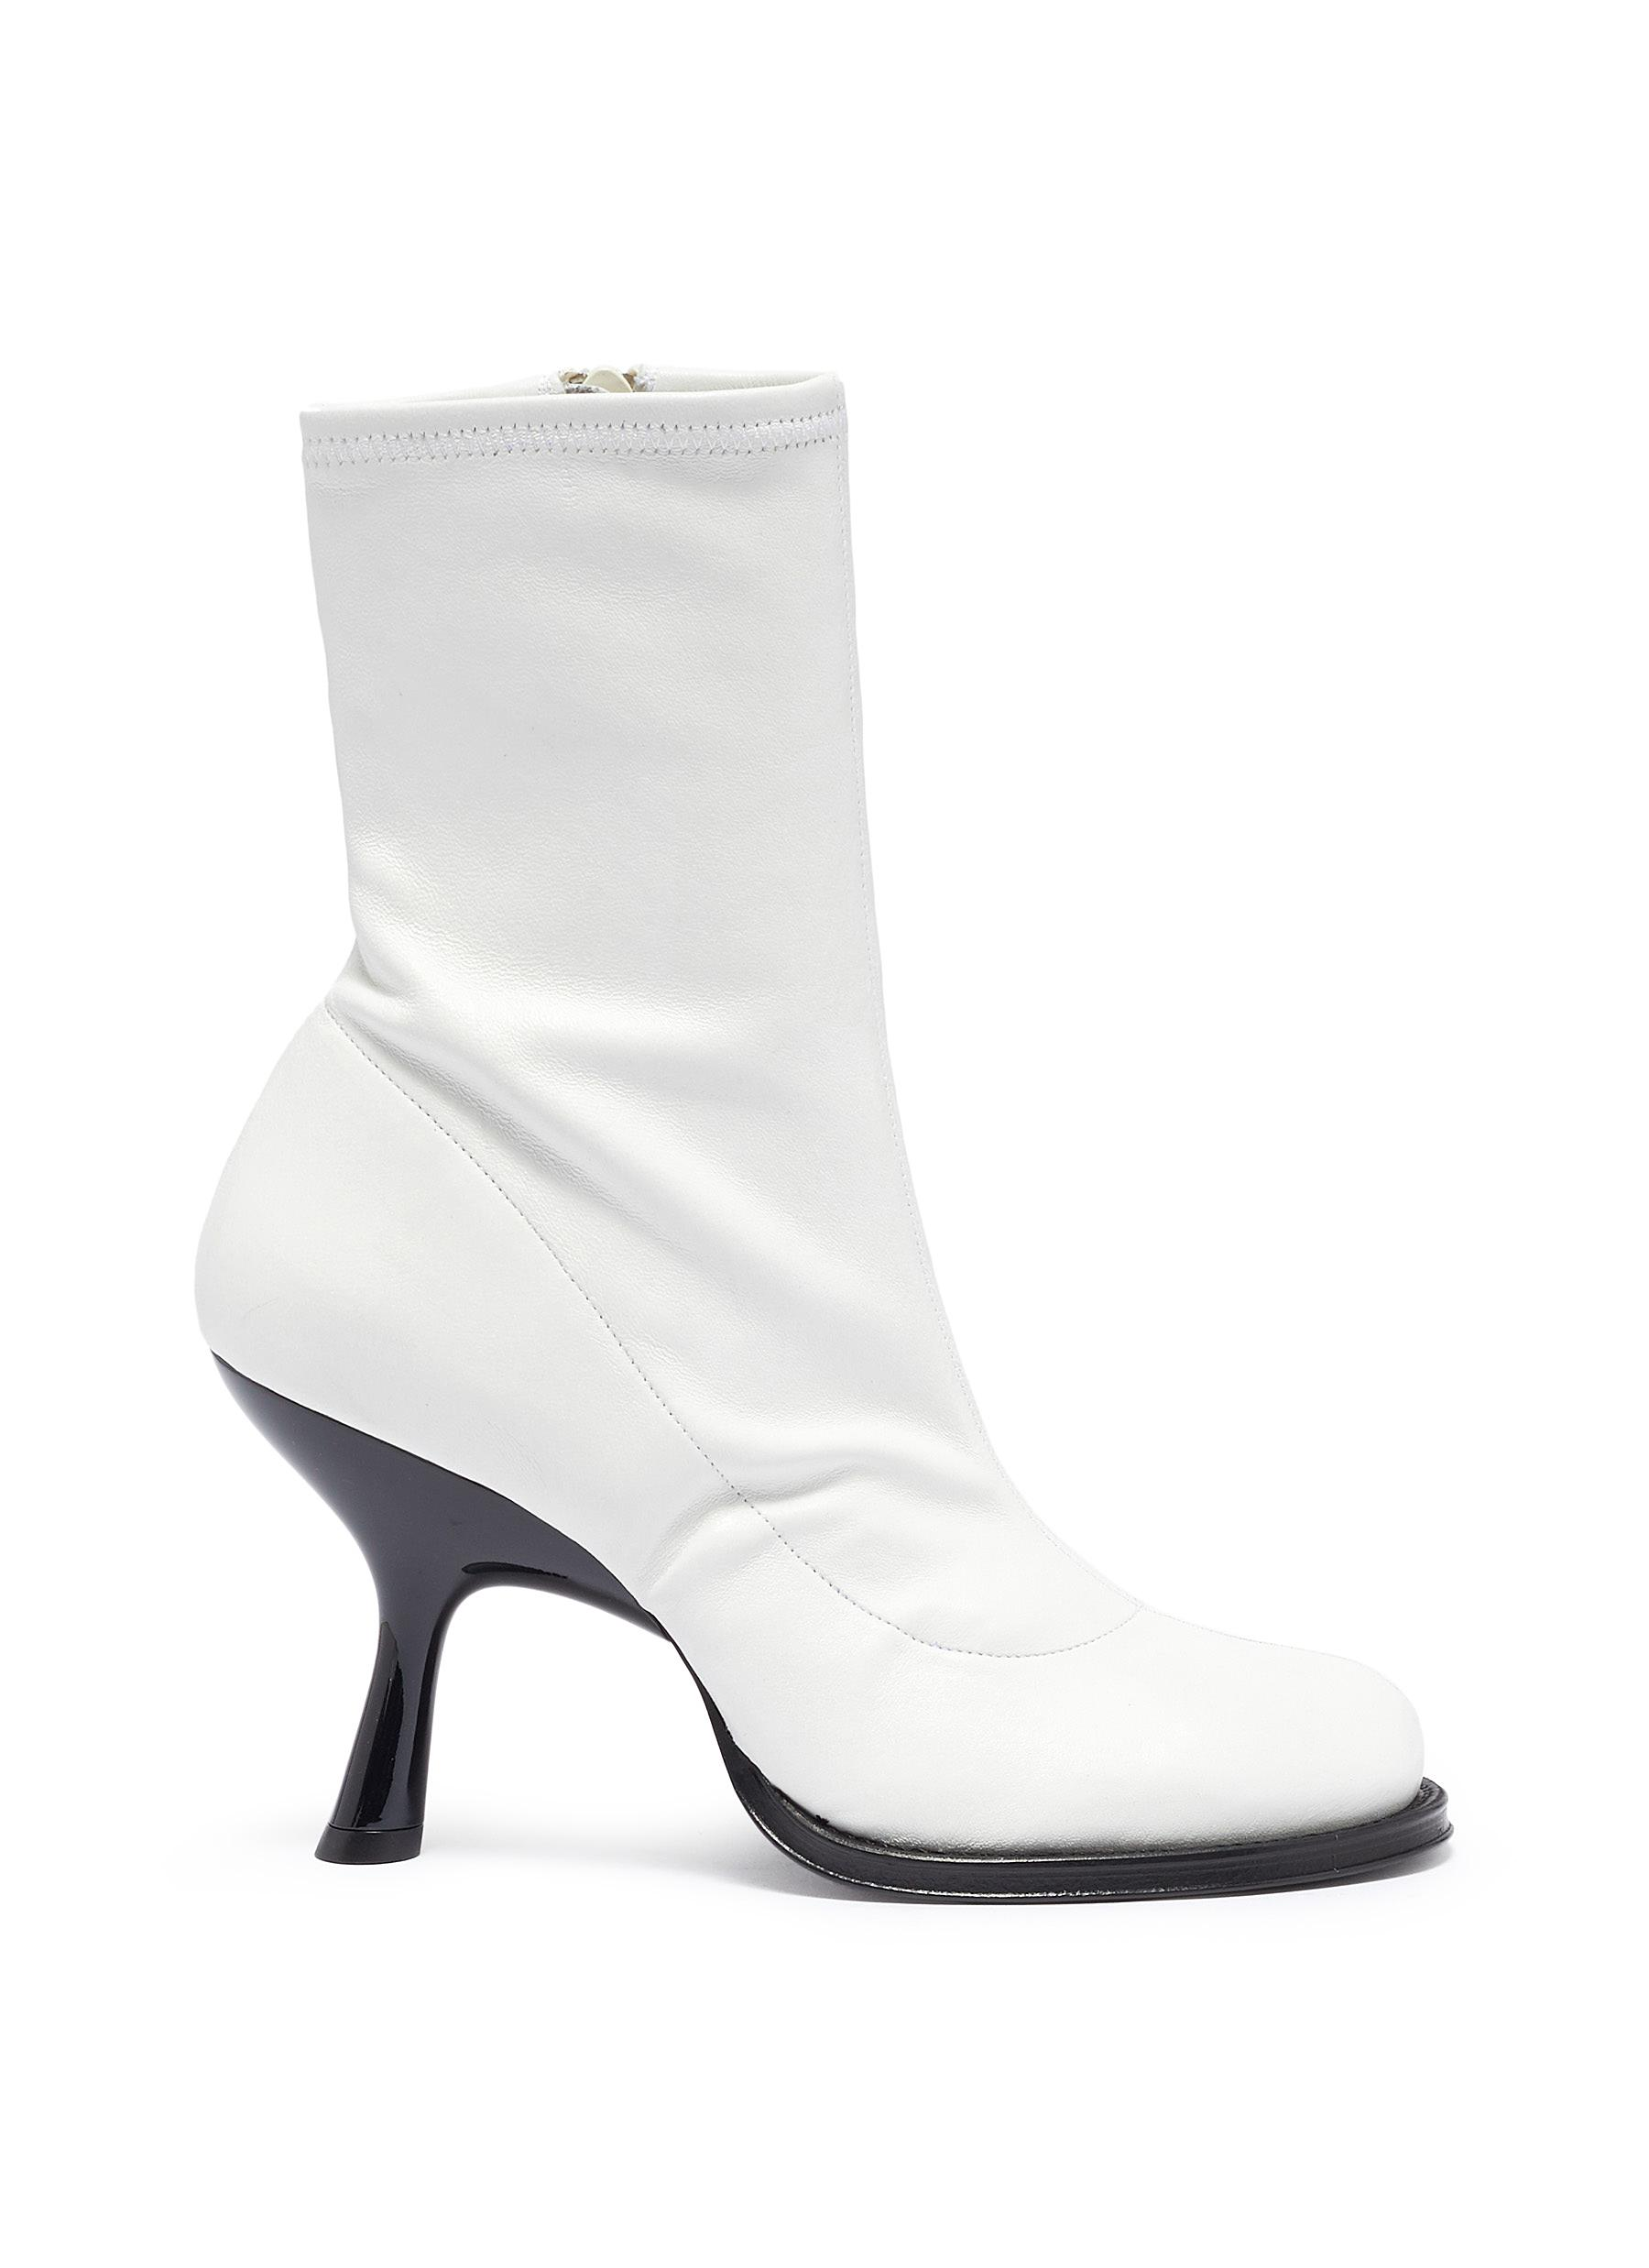 Bootie 90 sculptural heel leather ankle boots by Simon Miller